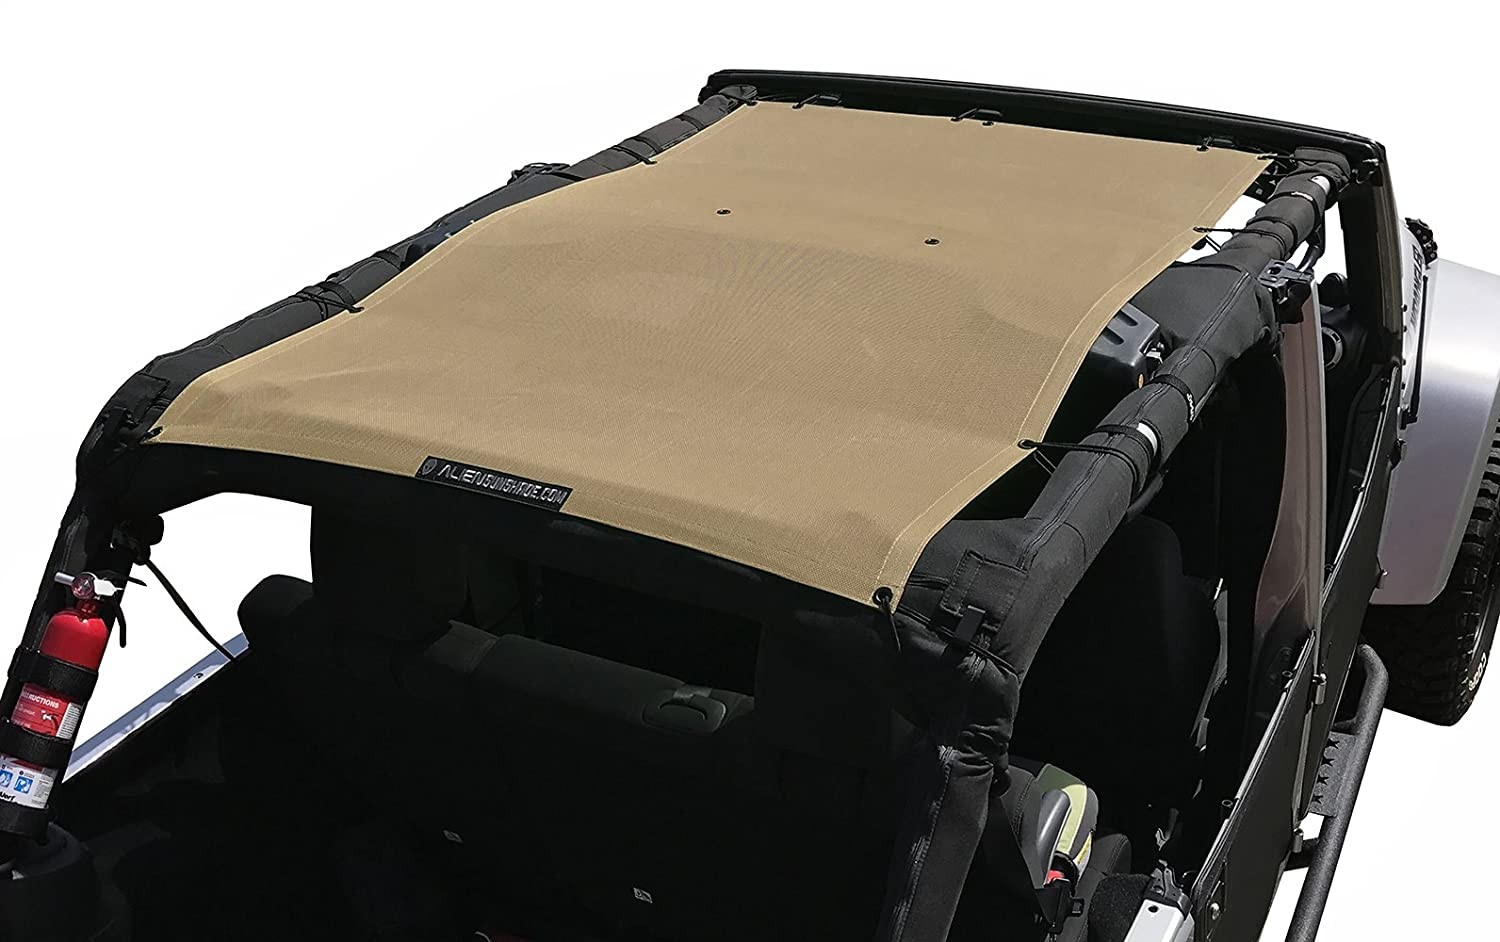 ALIEN SUNSHADE Jeep Wrangler Mesh Shade Top Cover with 10 Year Warranty Provides UV Protection for Your 4-Door JKU (2007-2017) (Lava)